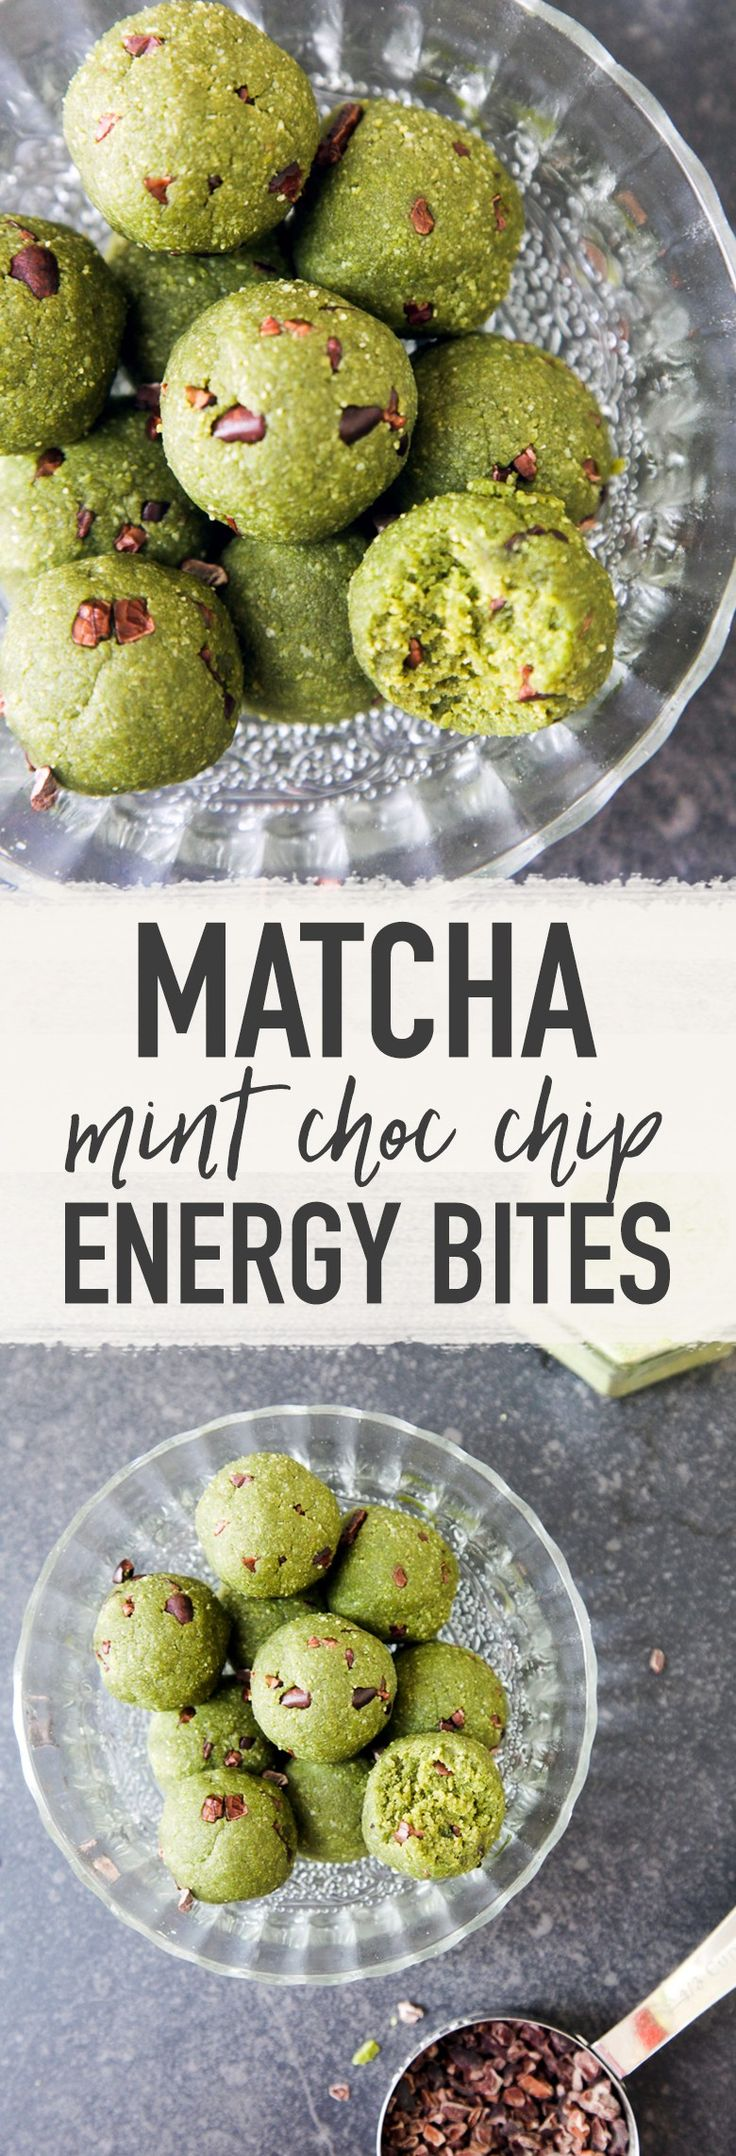 Matcha Mint Chocolate Chip Cookie Dough Bites...I think I'd use vanilla instead of peppermint extract